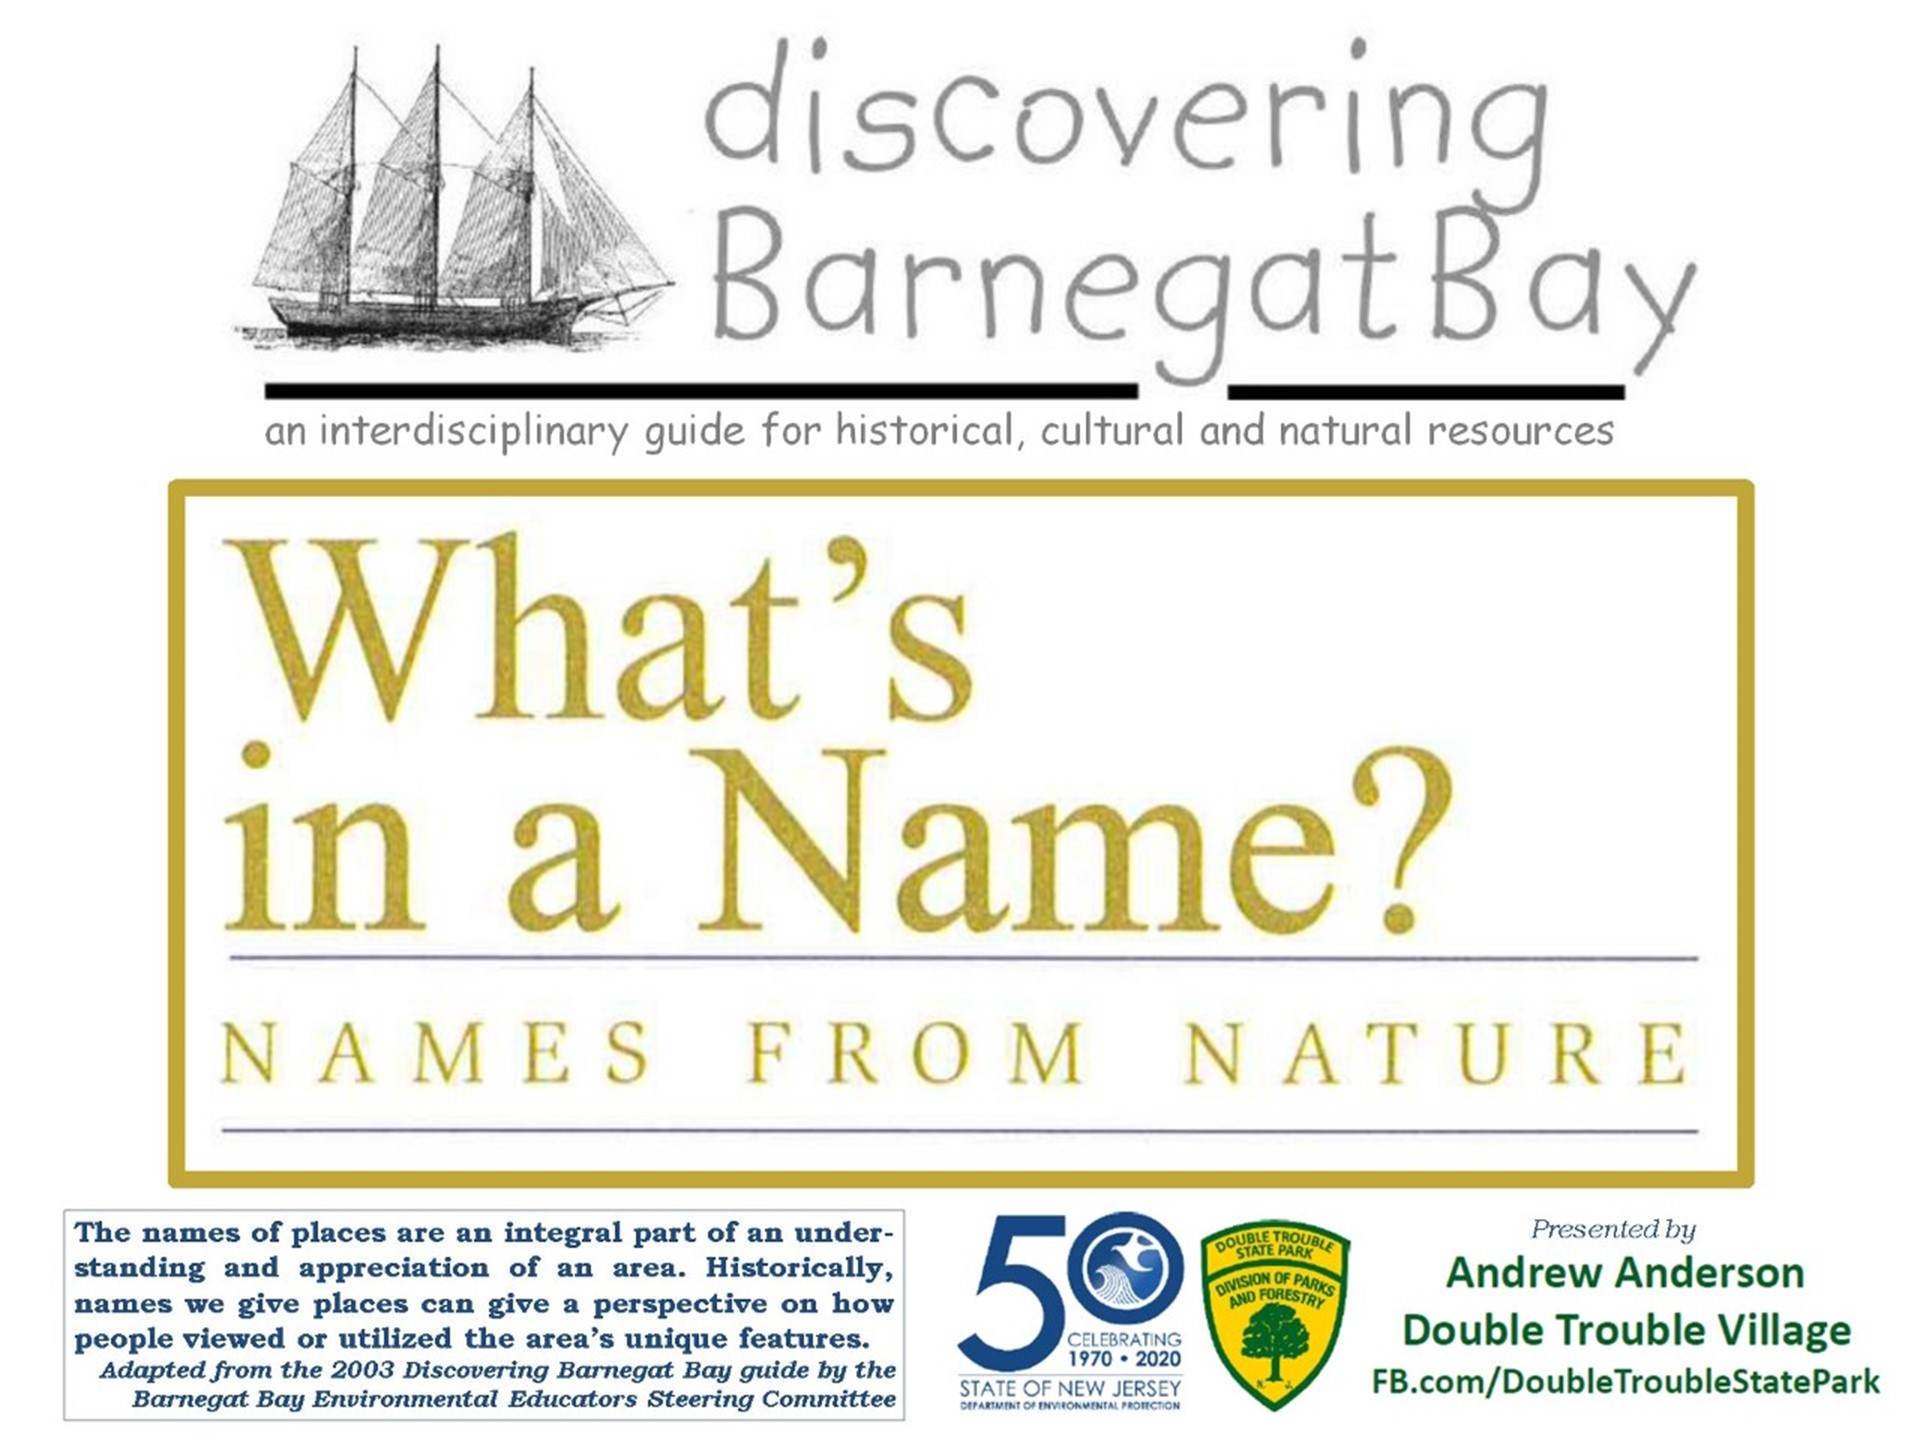 Discovering Barnegat Bay: What's in a Name? Names from Nature